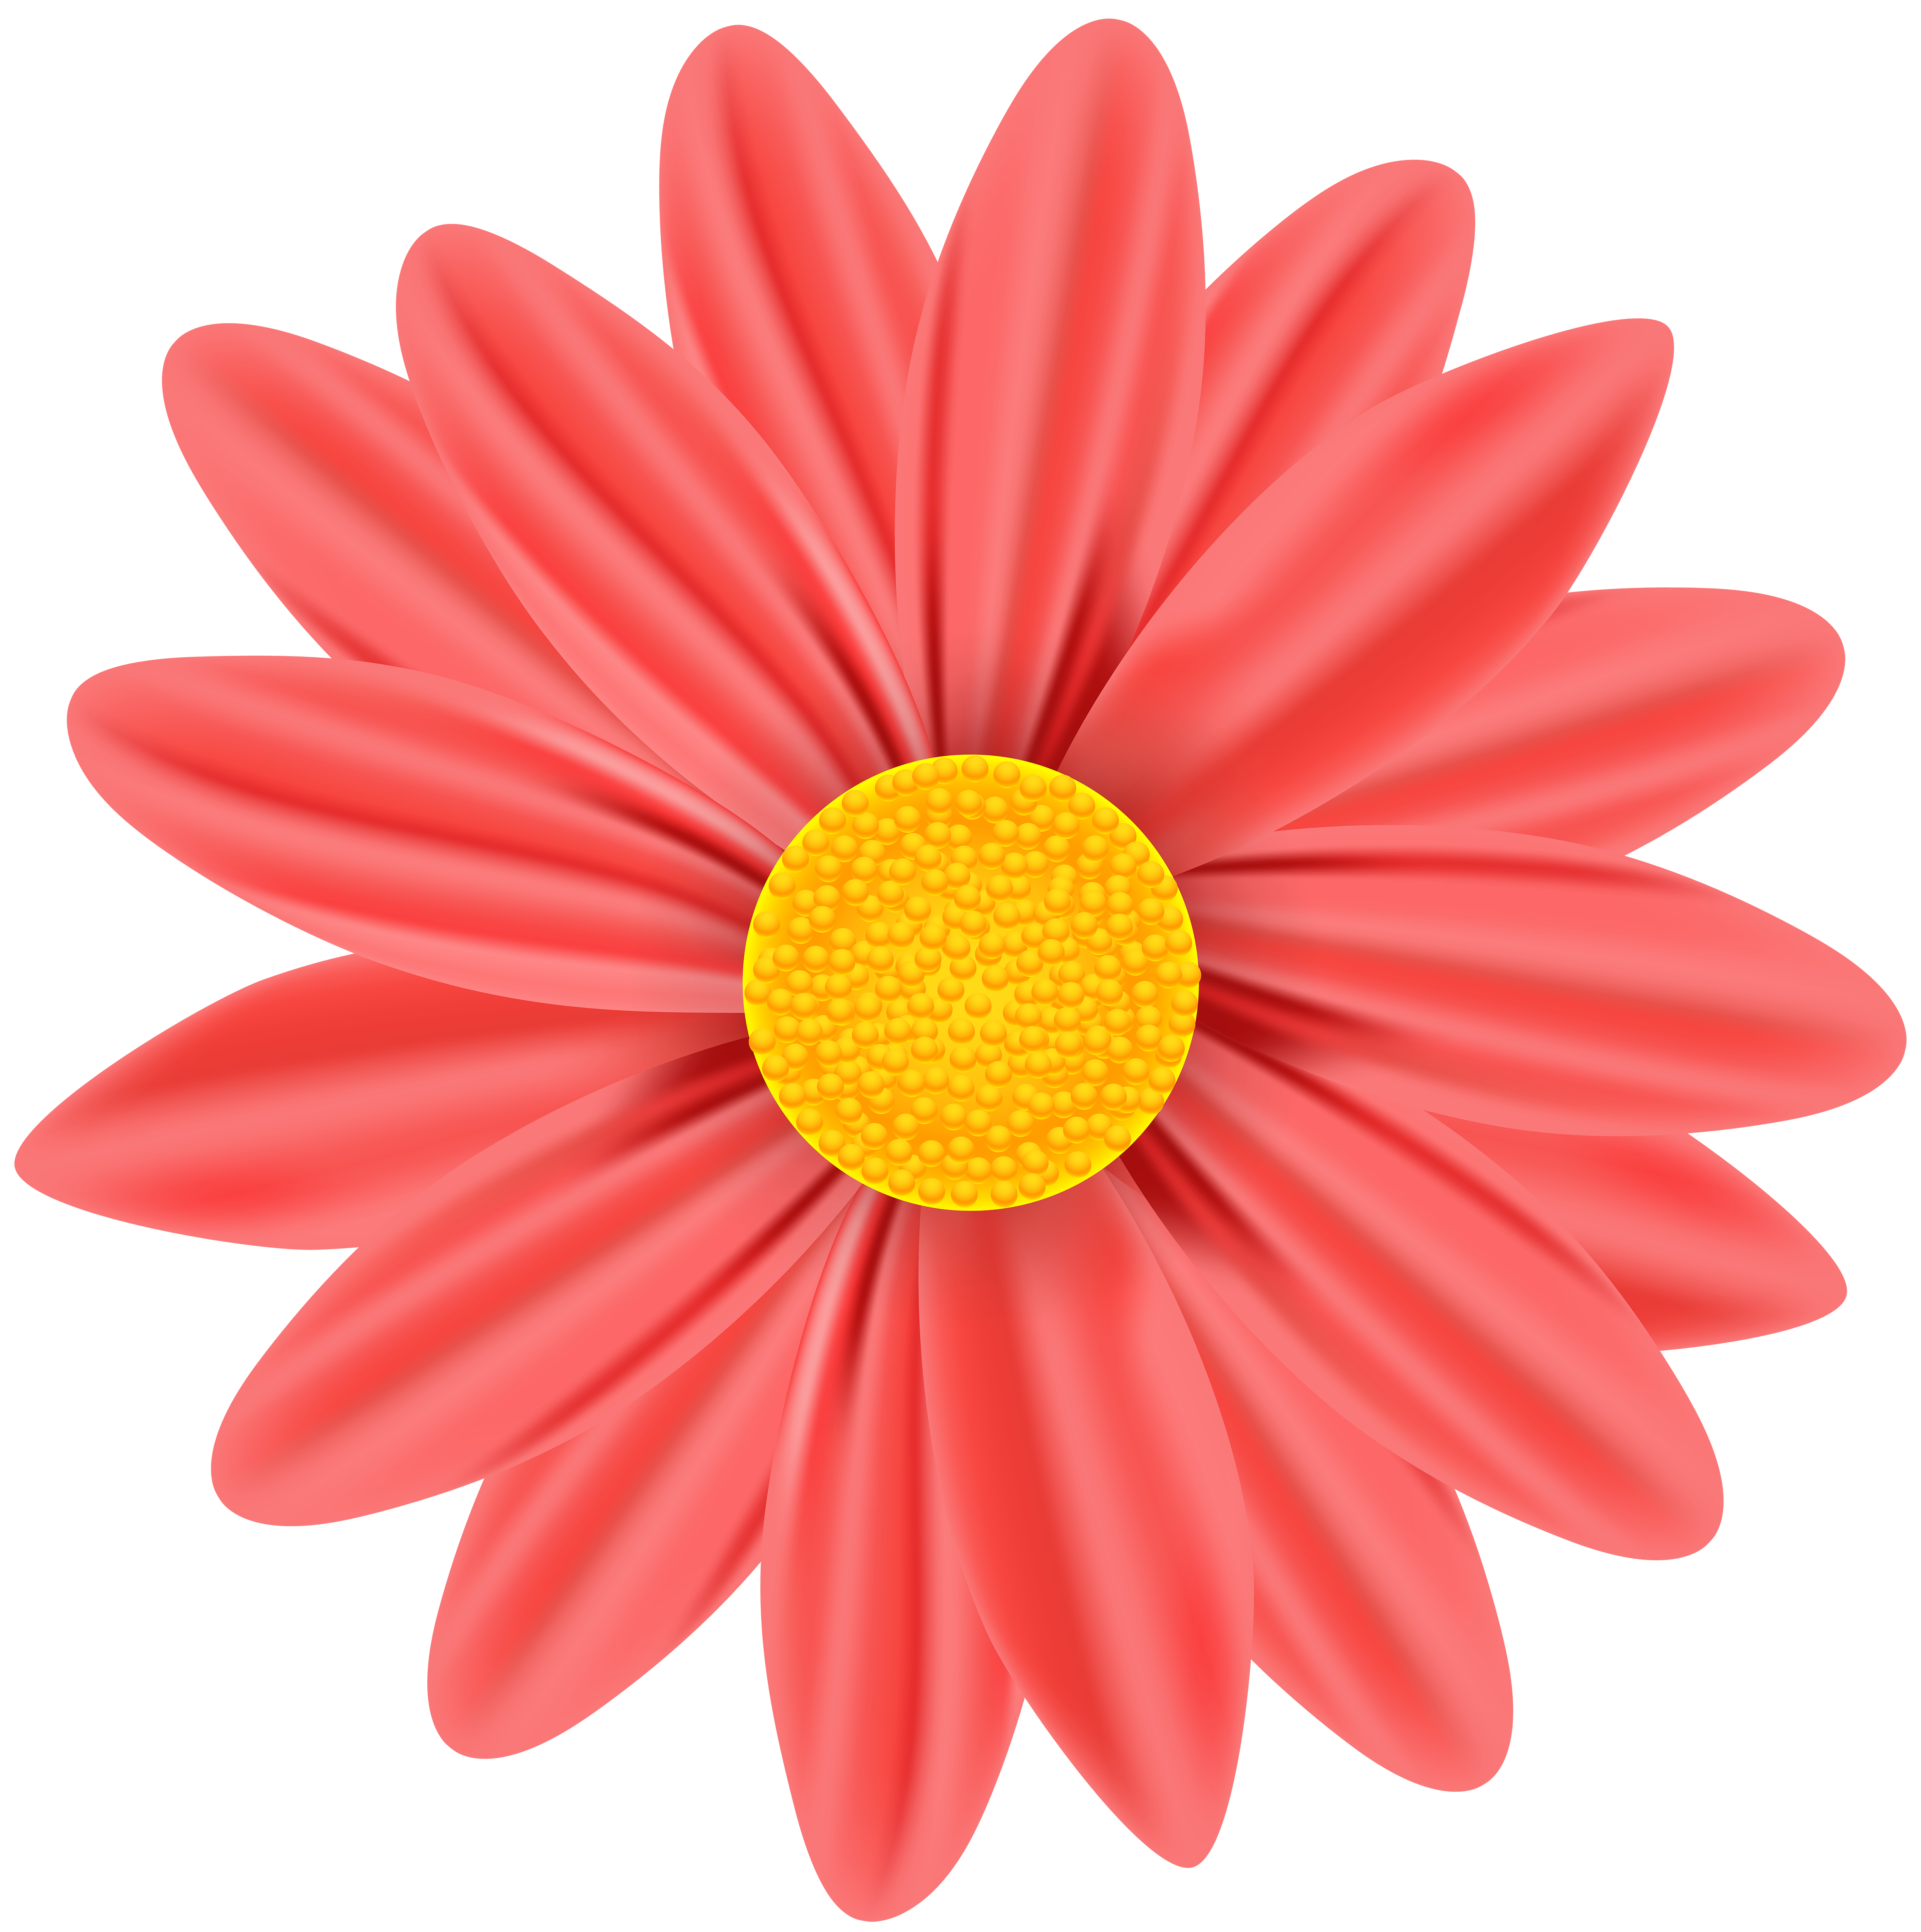 Daisy clipart bloom. Red png clip art